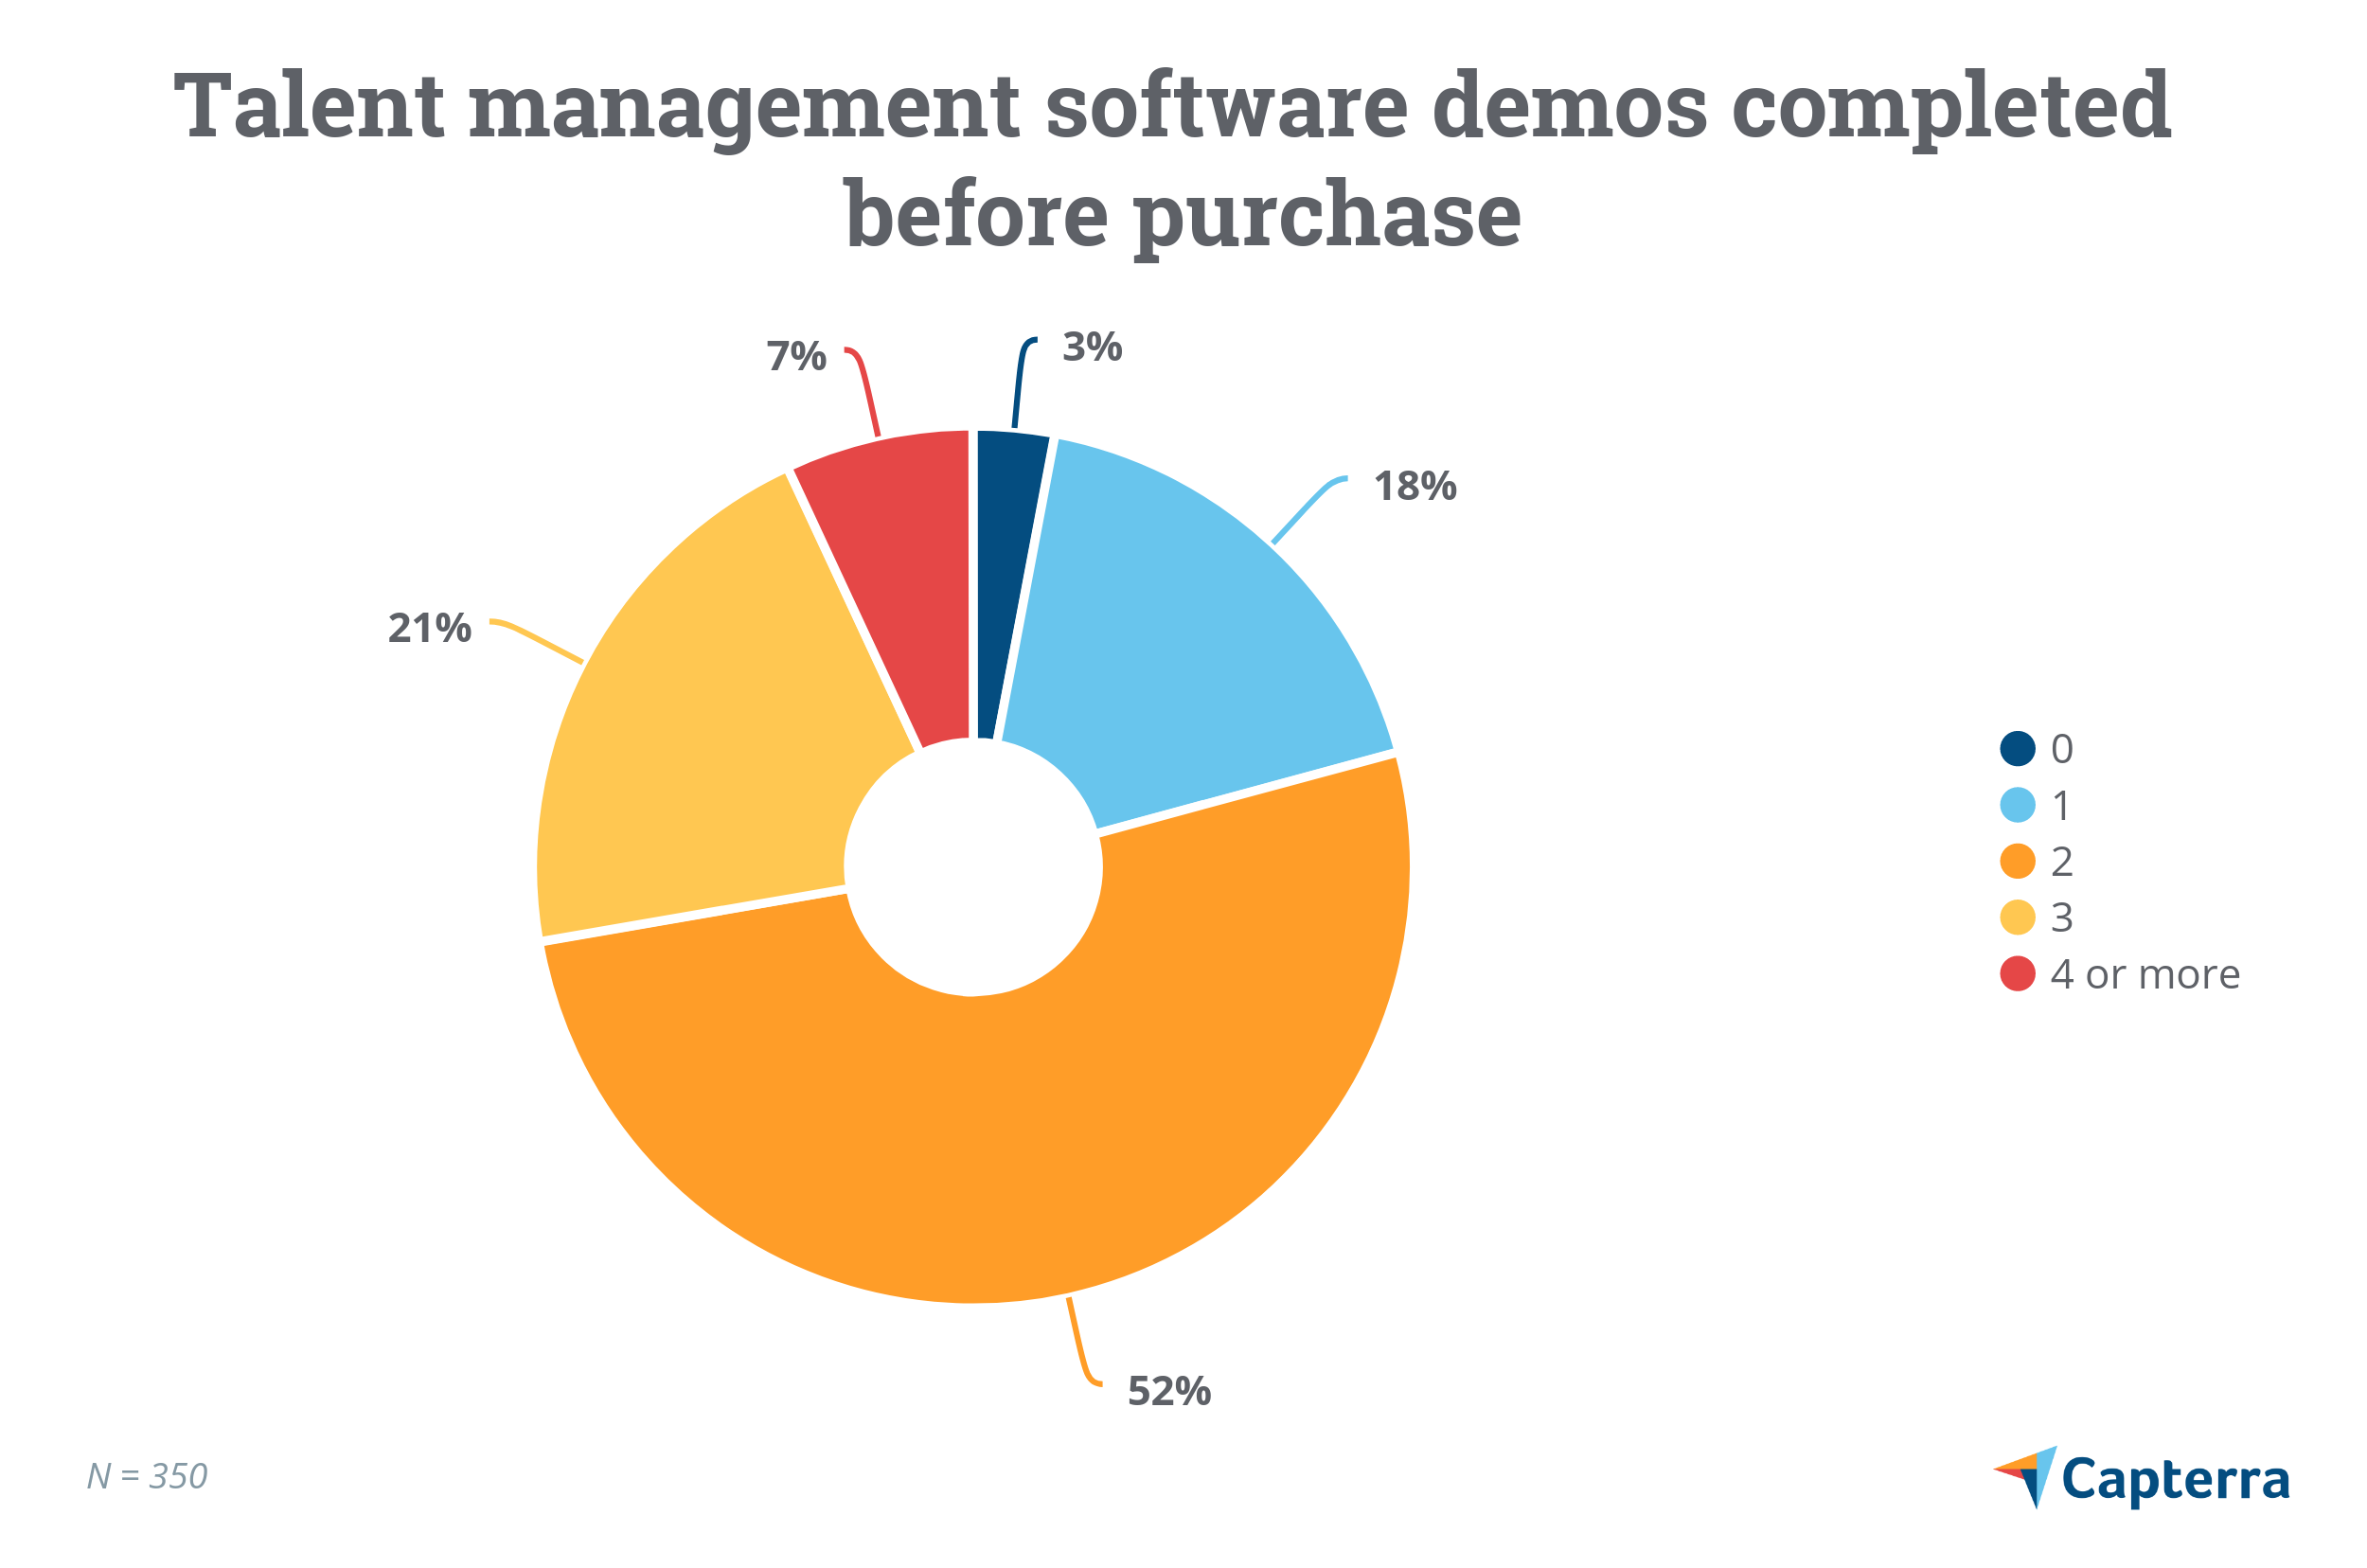 Talent management software demos completed before purchase